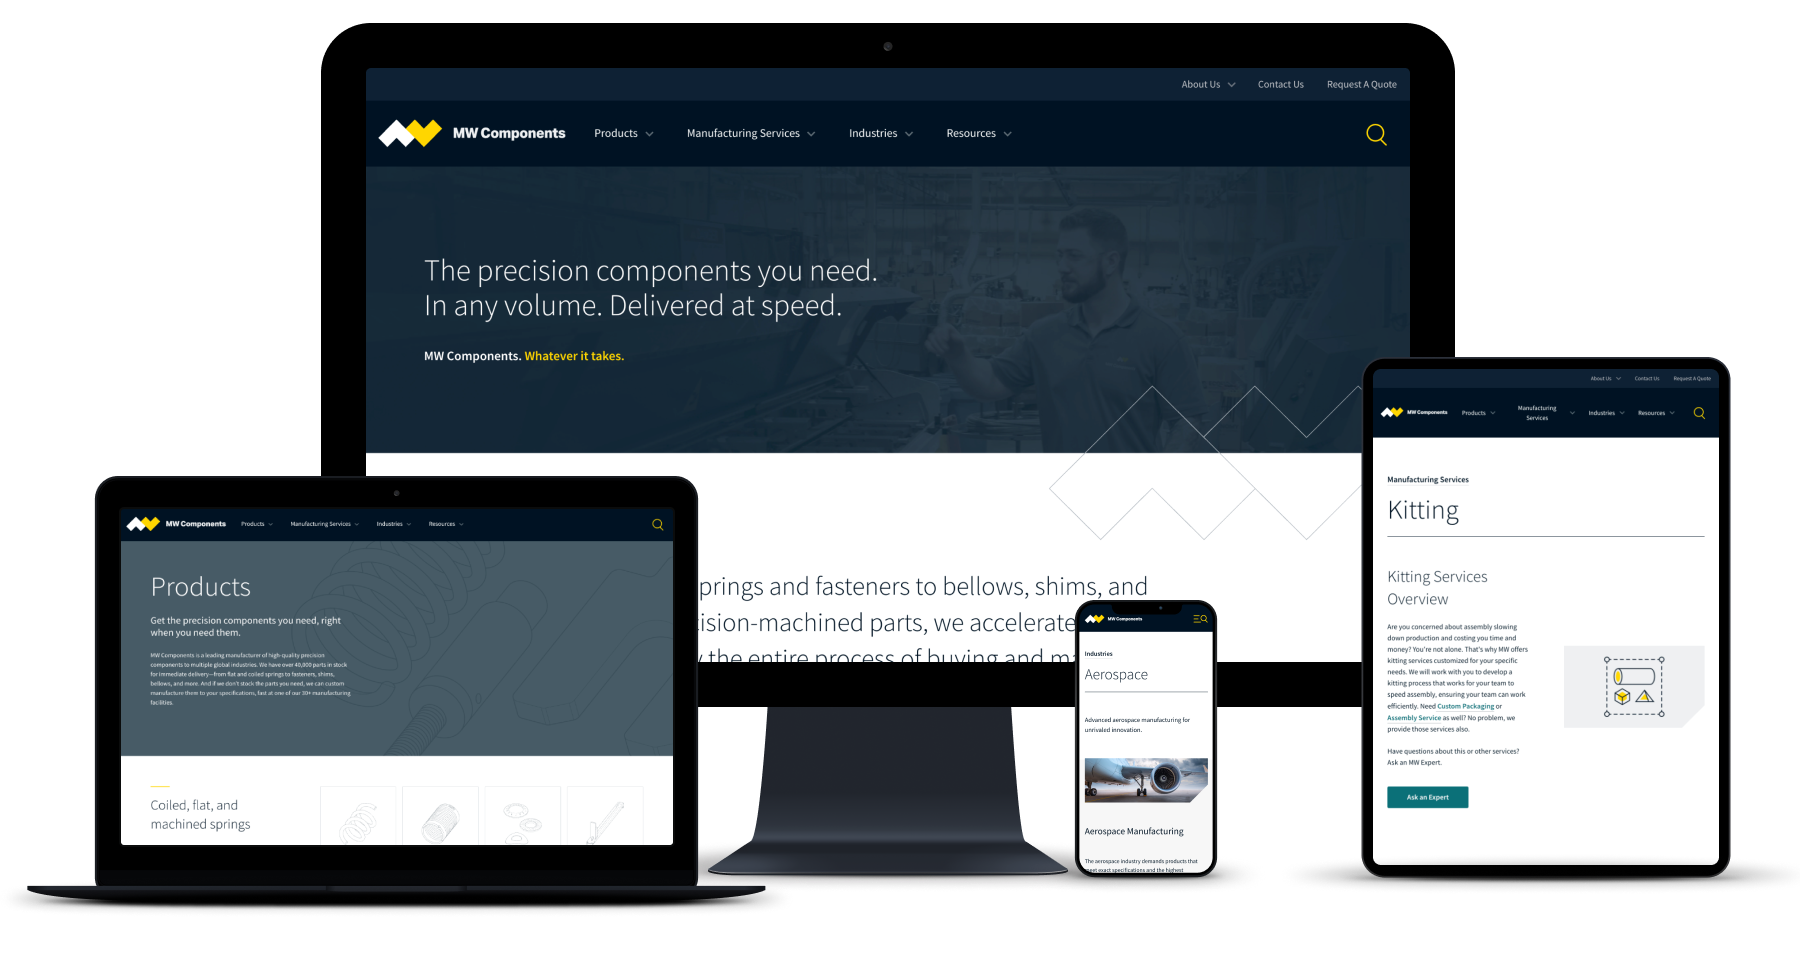 An image of the MW Industries website on various screen types - mobile, laptop, tablet, and large monitor.